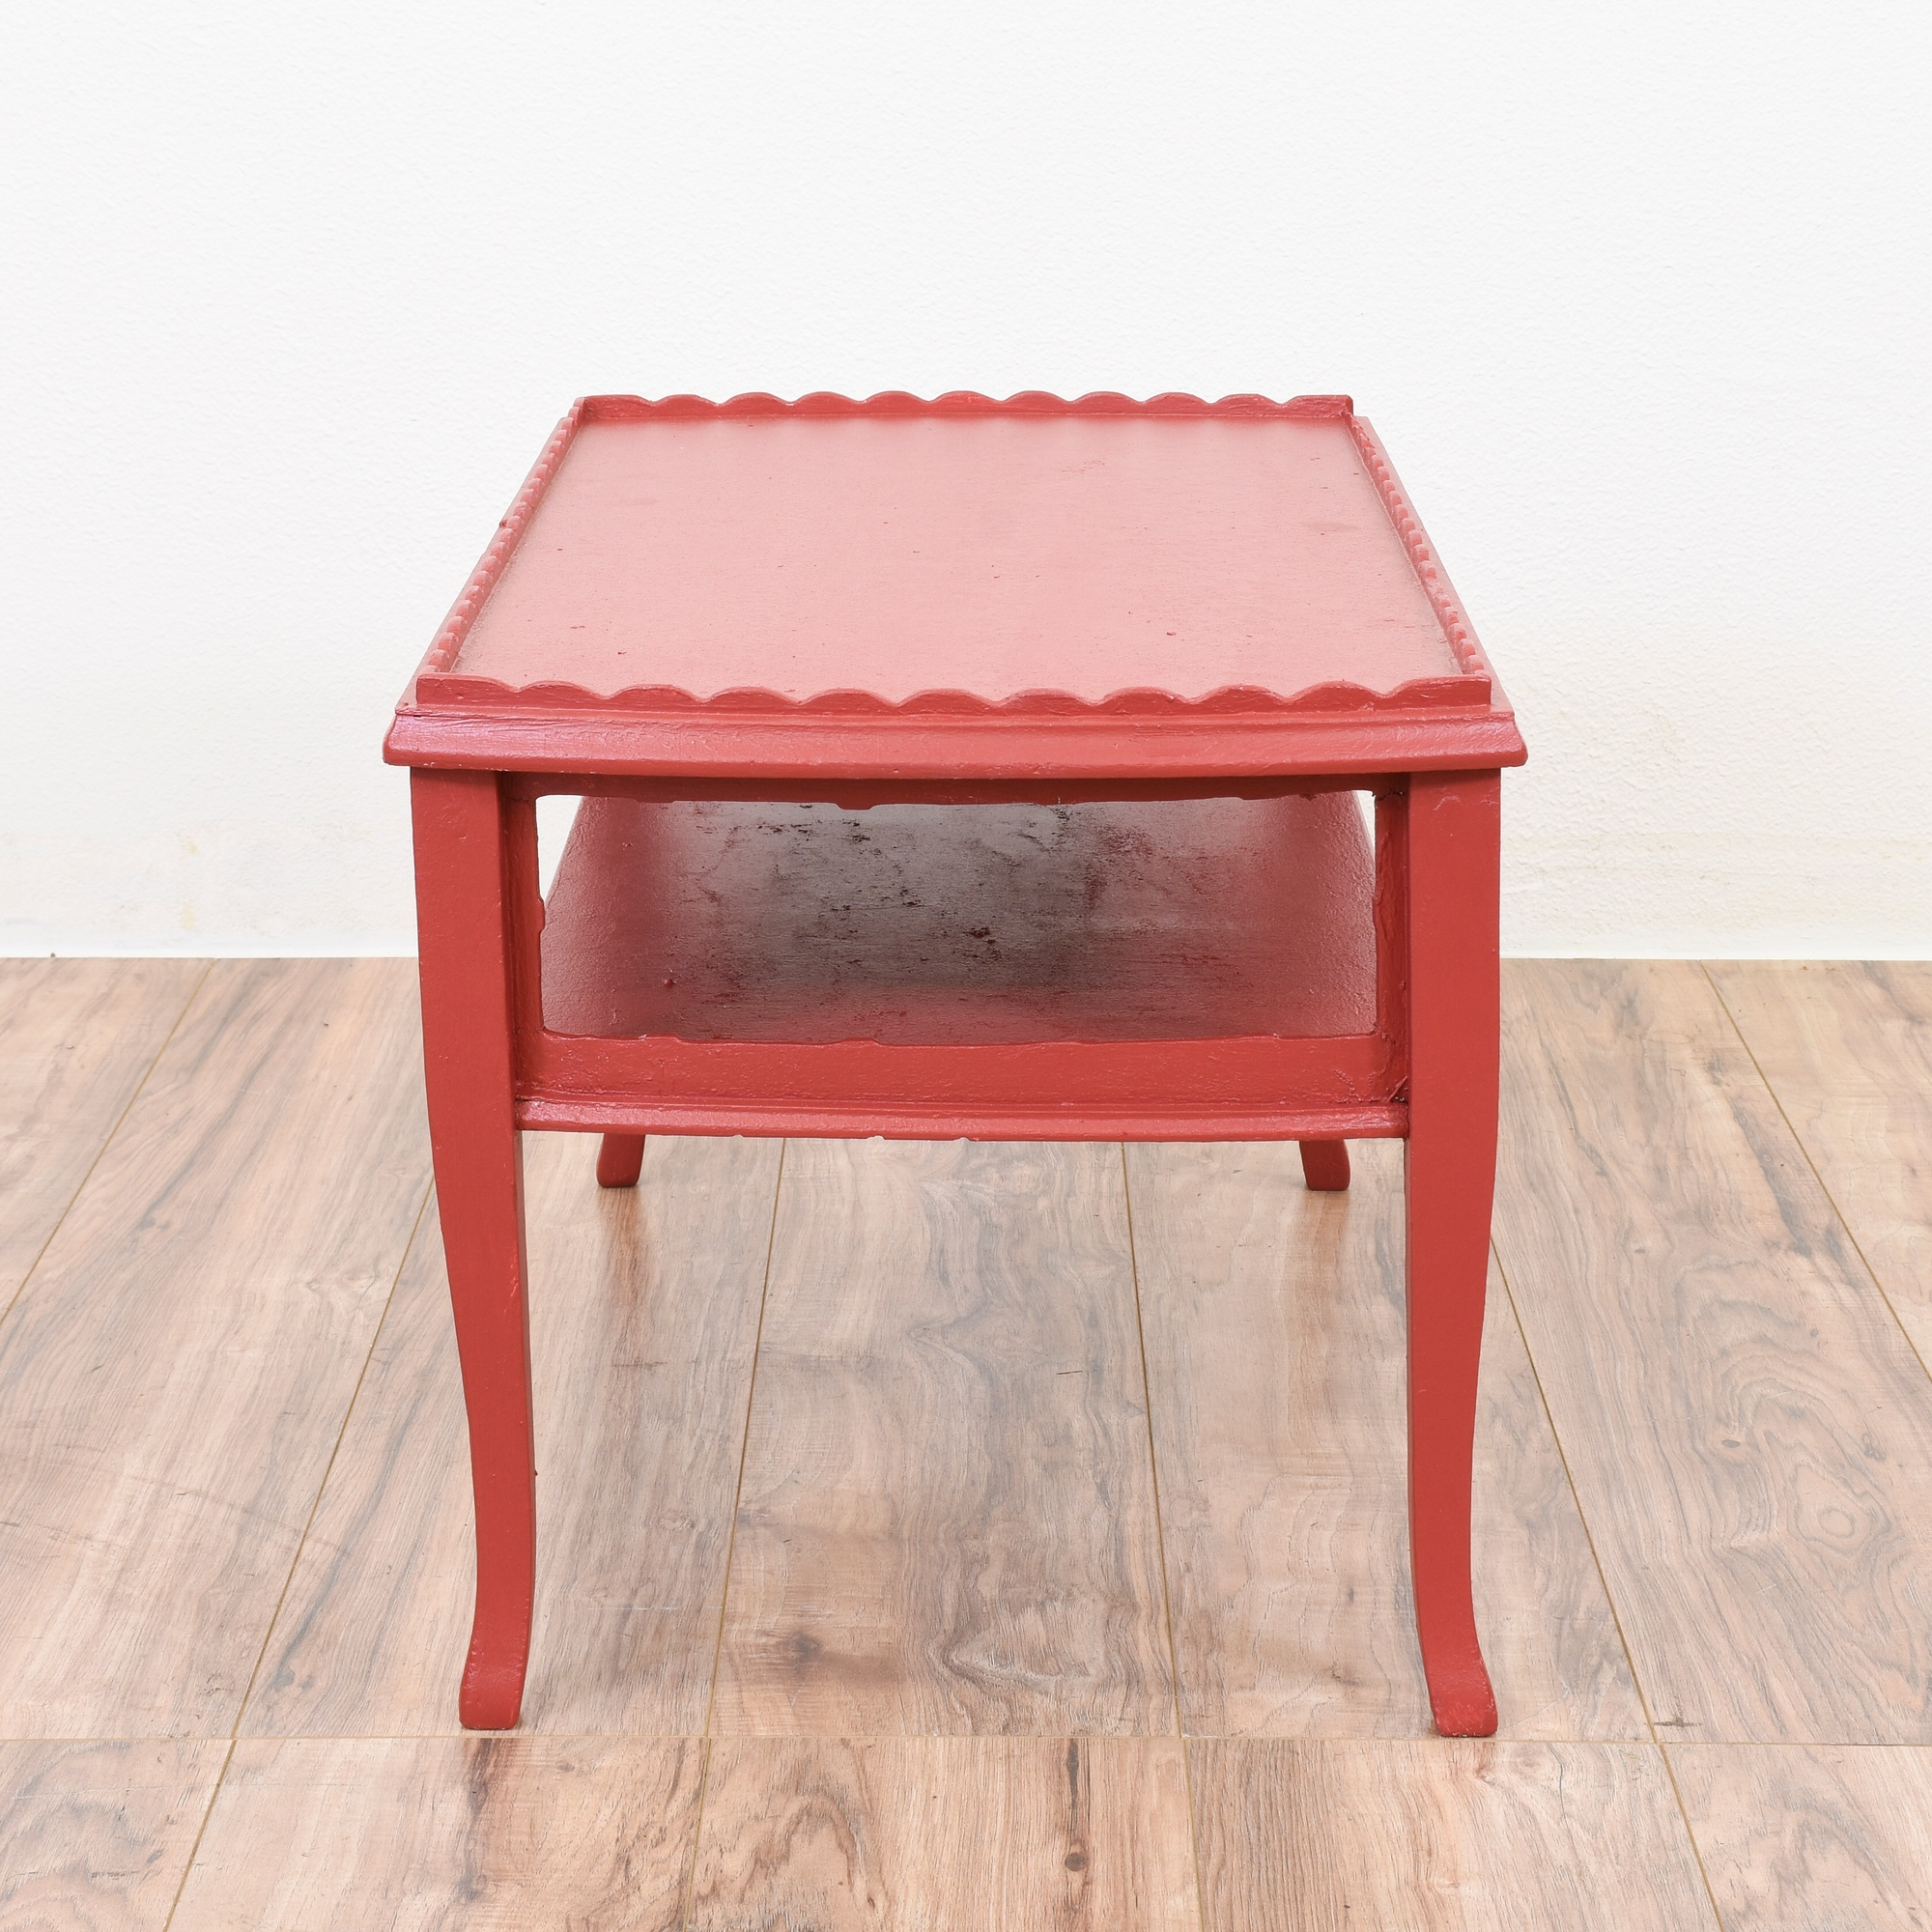 Shabby Chic Coffee Table Nz: Shabby Chic Red 2 Tiered Coffee Table